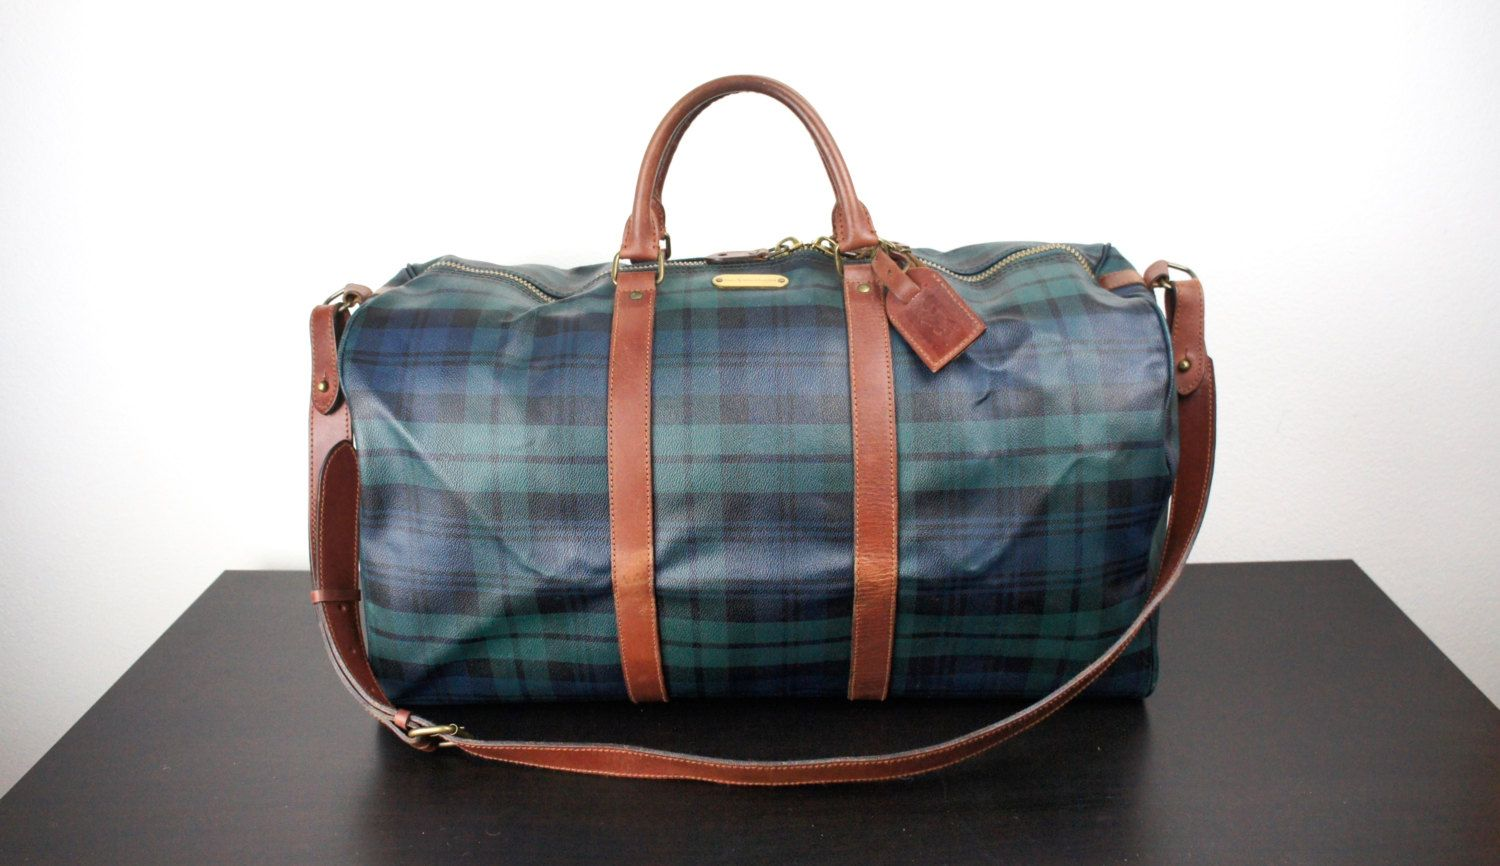 Vintage Ralph Lauren Duffle Travel Bag b2efc6a08b343